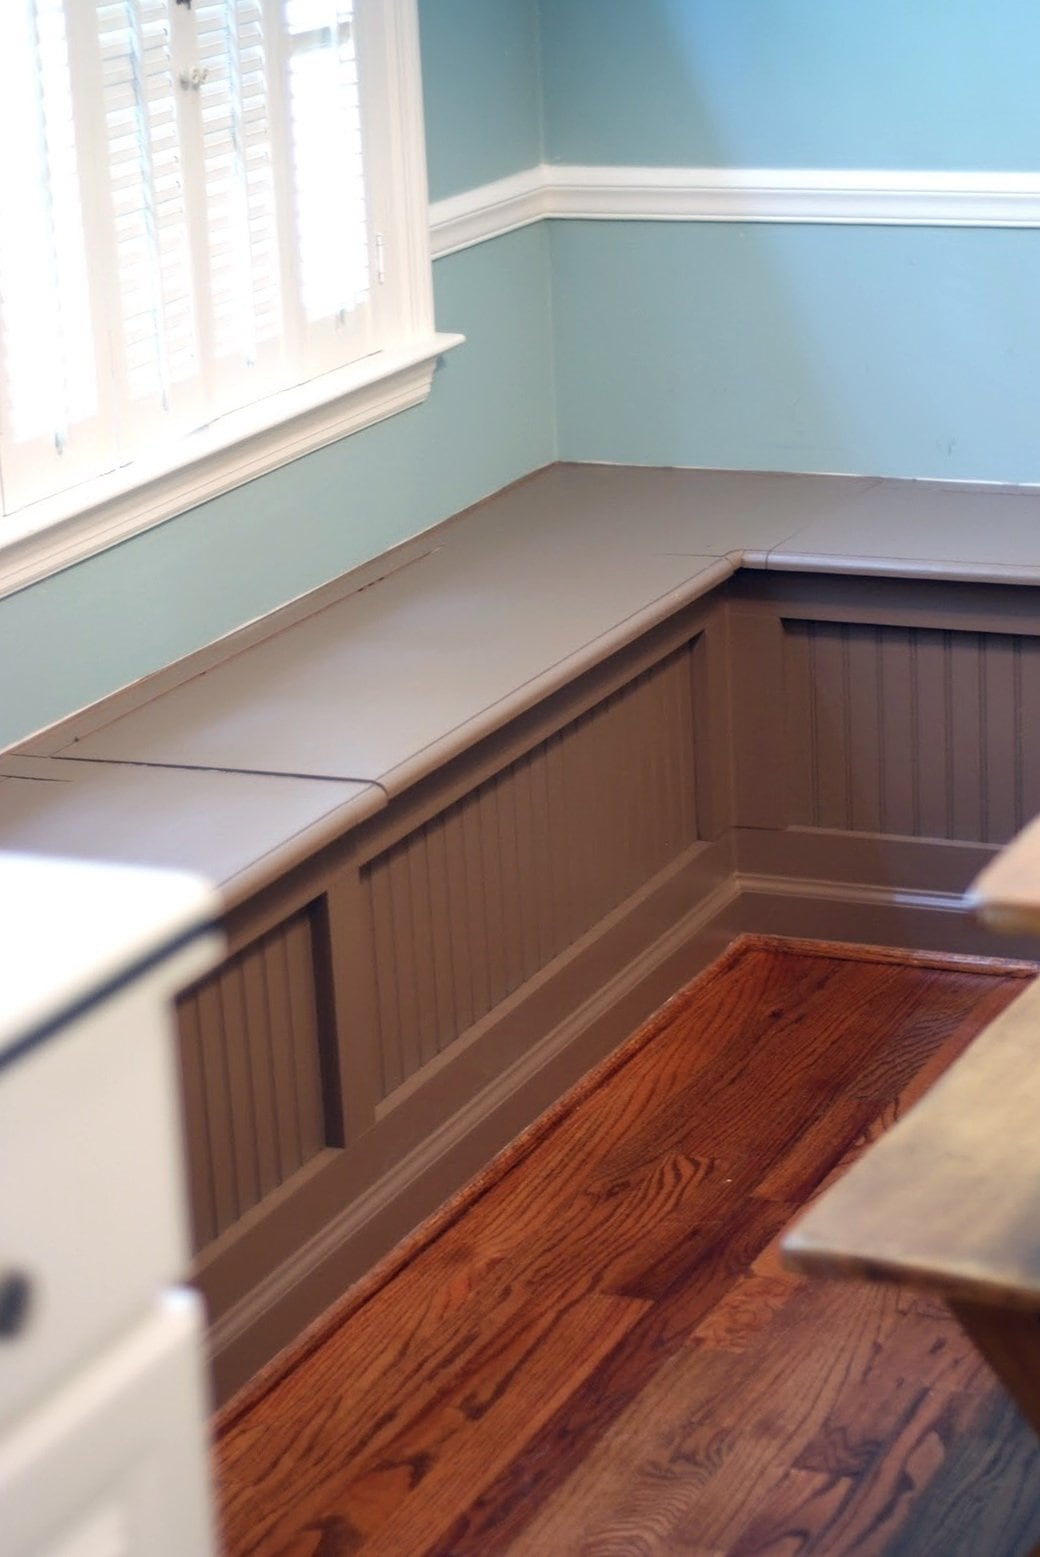 Breakfast Nook Bench Dimensions Loccie Better Homes